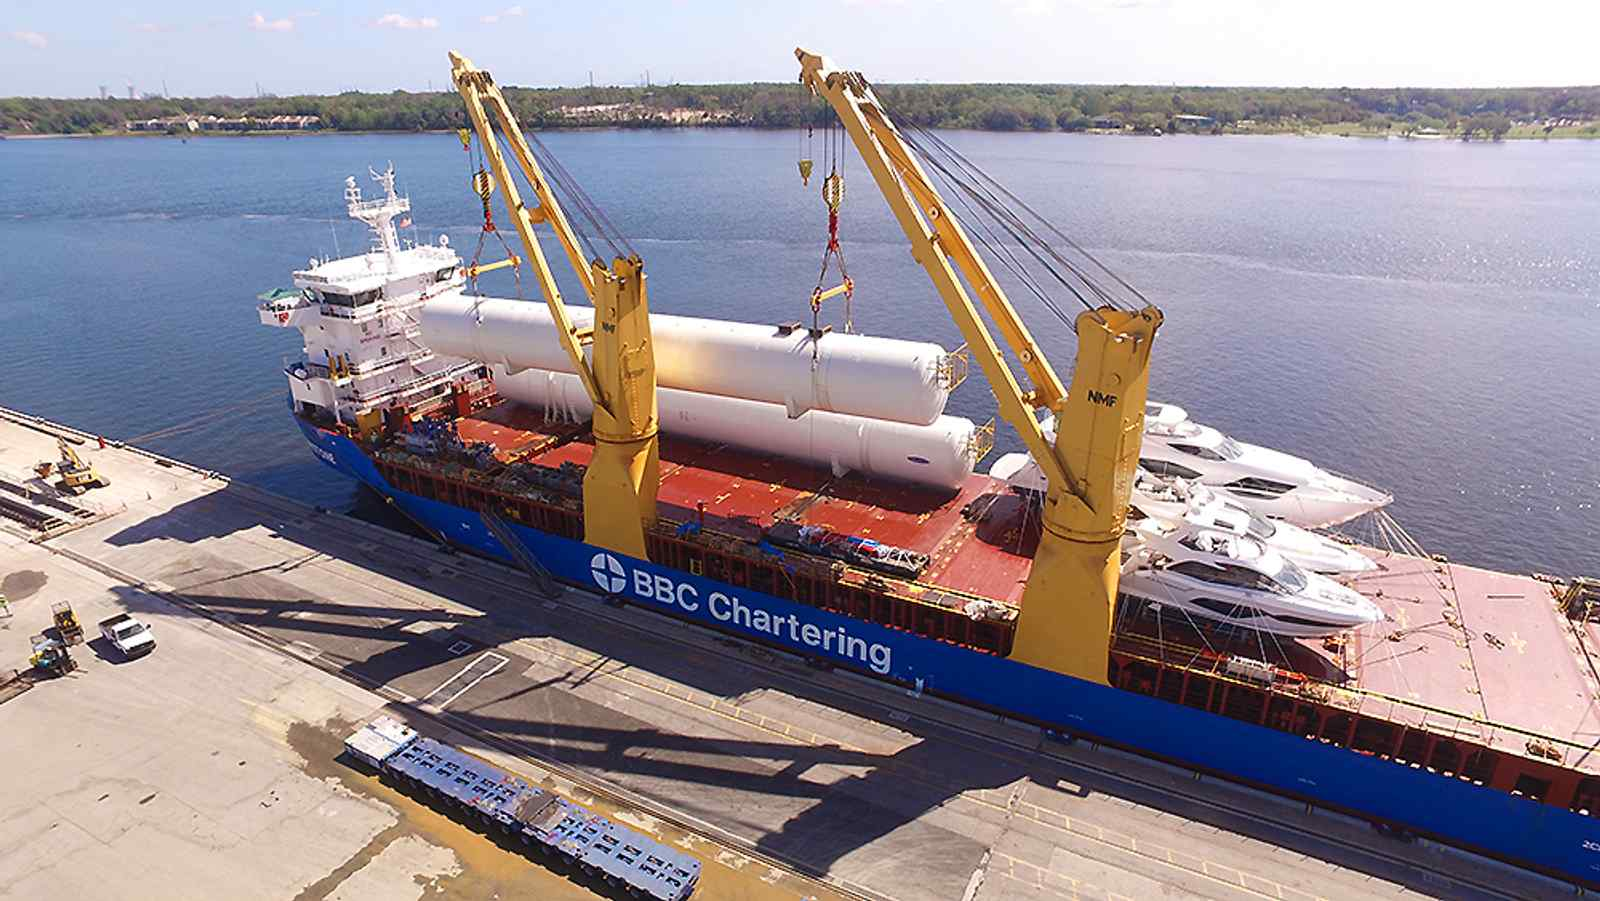 New Massive LNG Storage Tanks Arrive for Crowley's Jacksonville Bunkering Facility